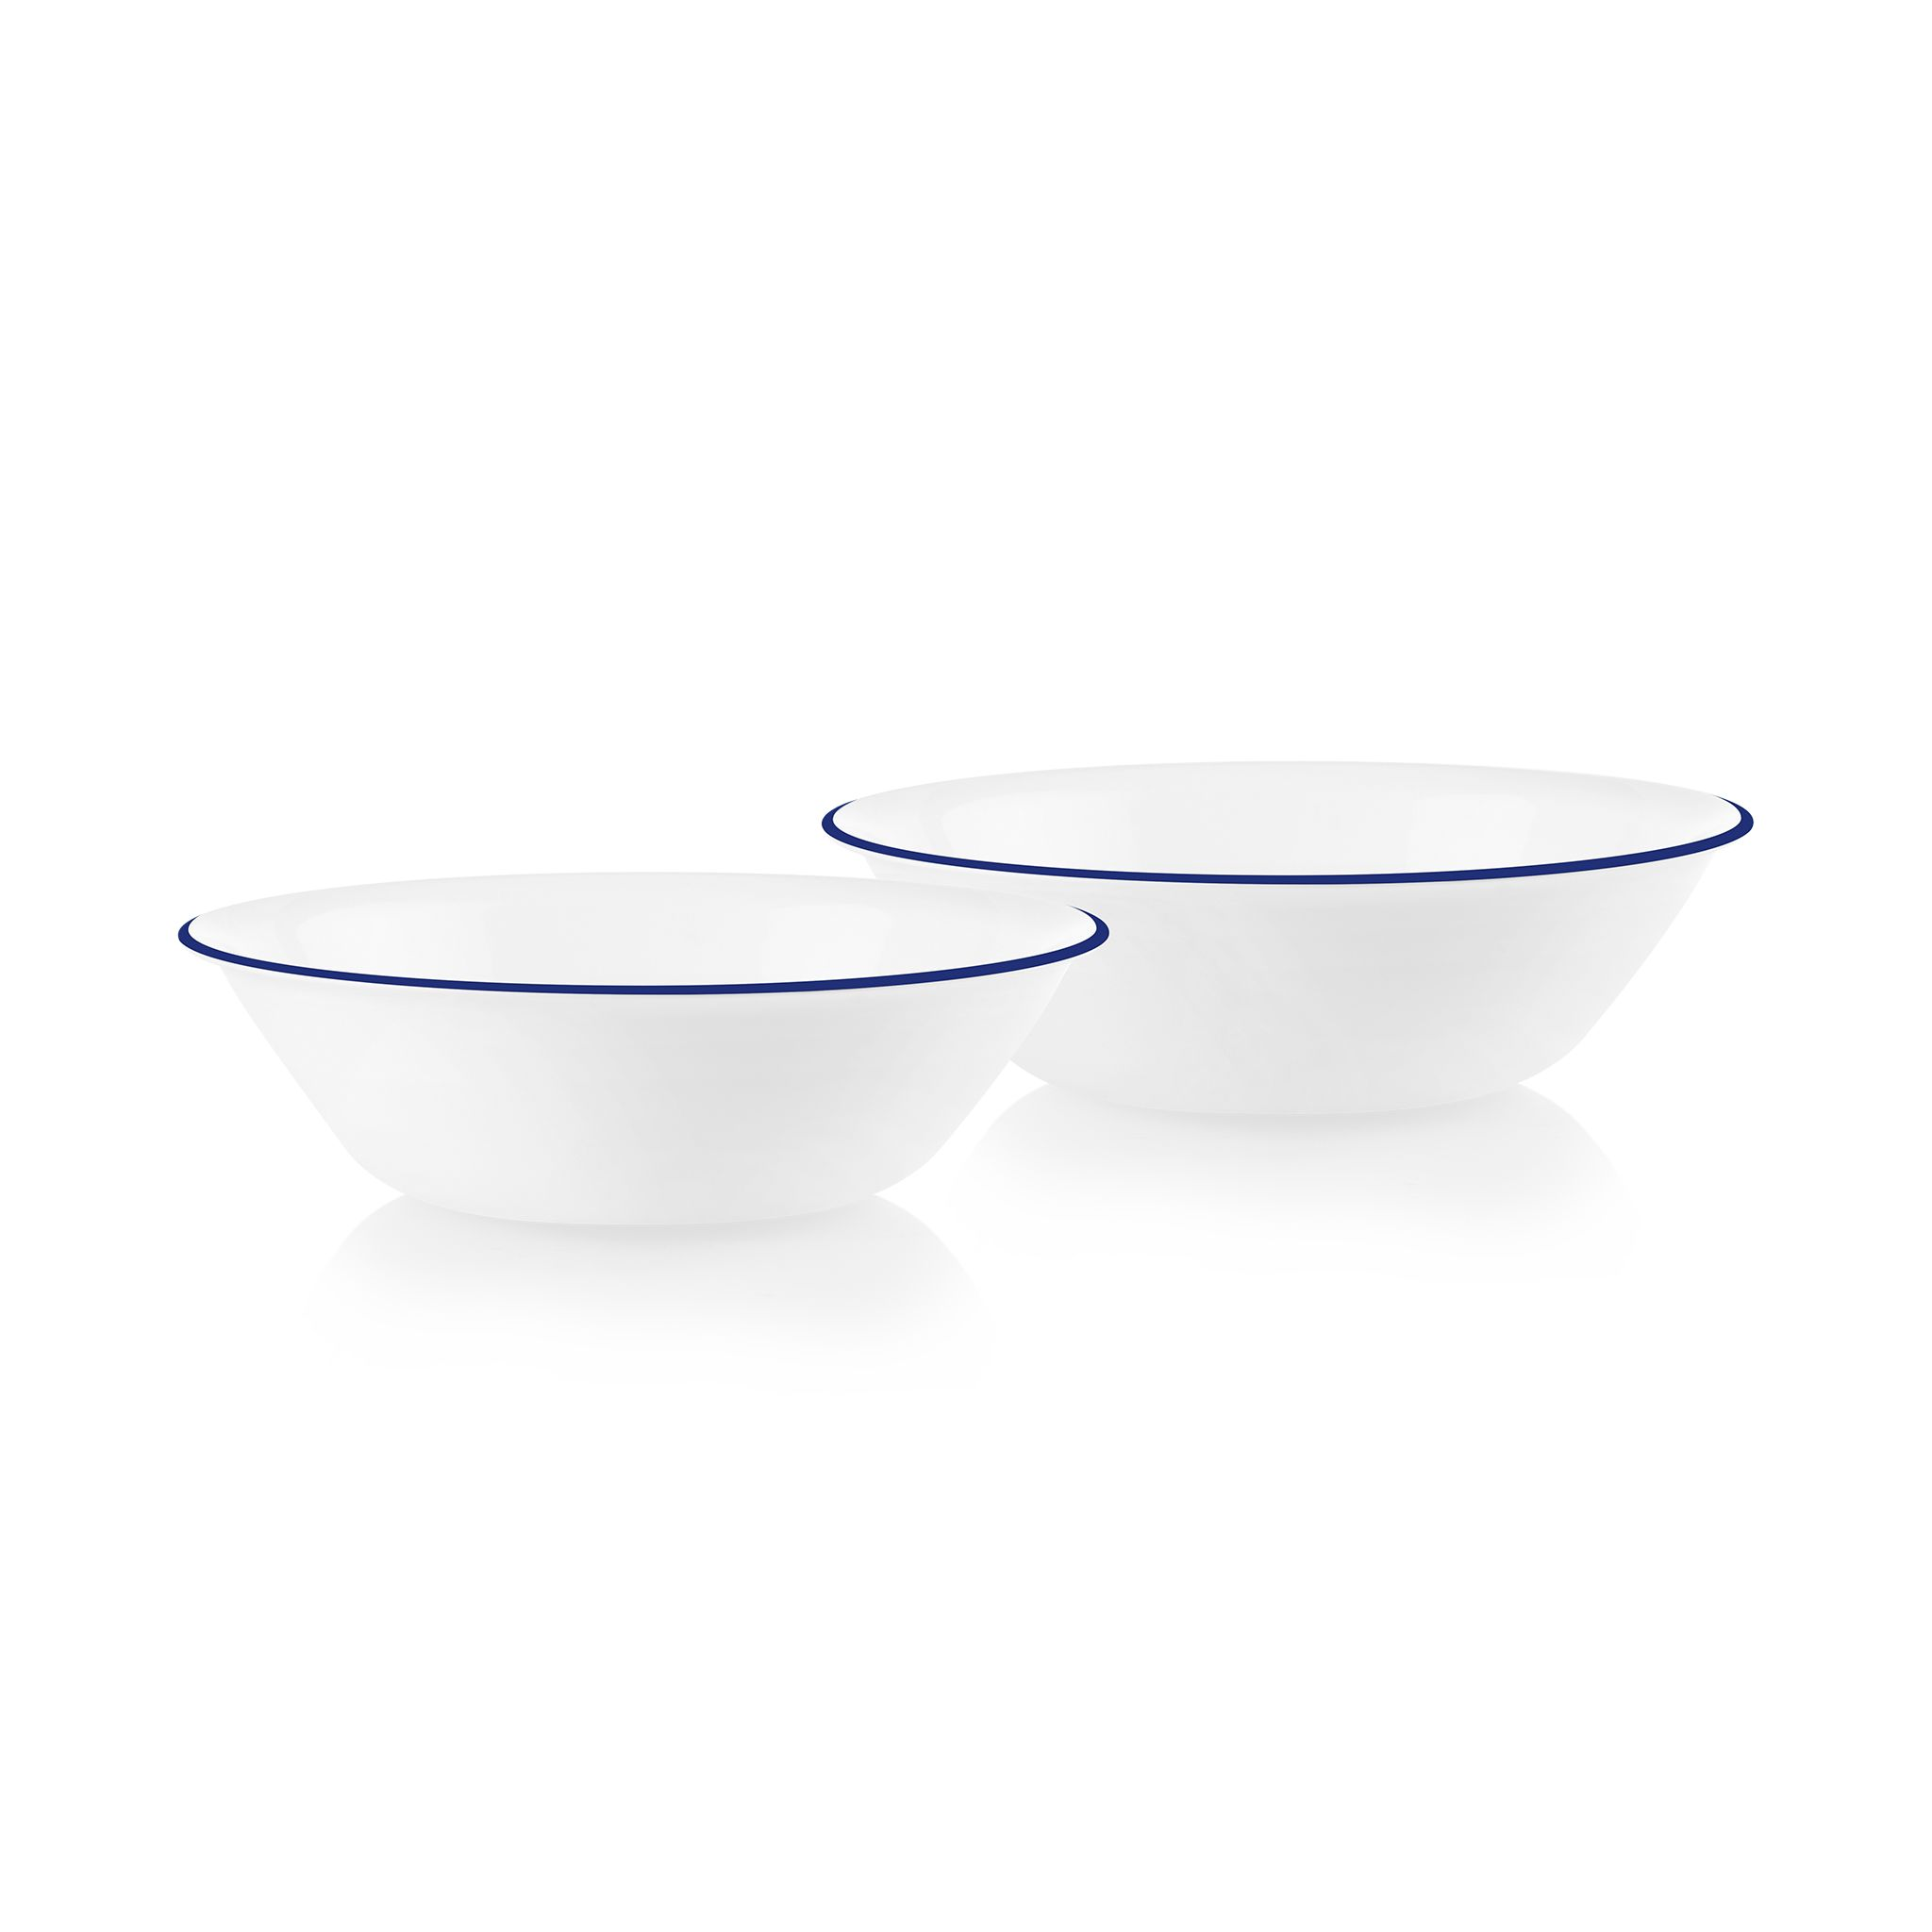 Brilliant Blue Banded 1-quart Serving Bowls, 2-pack